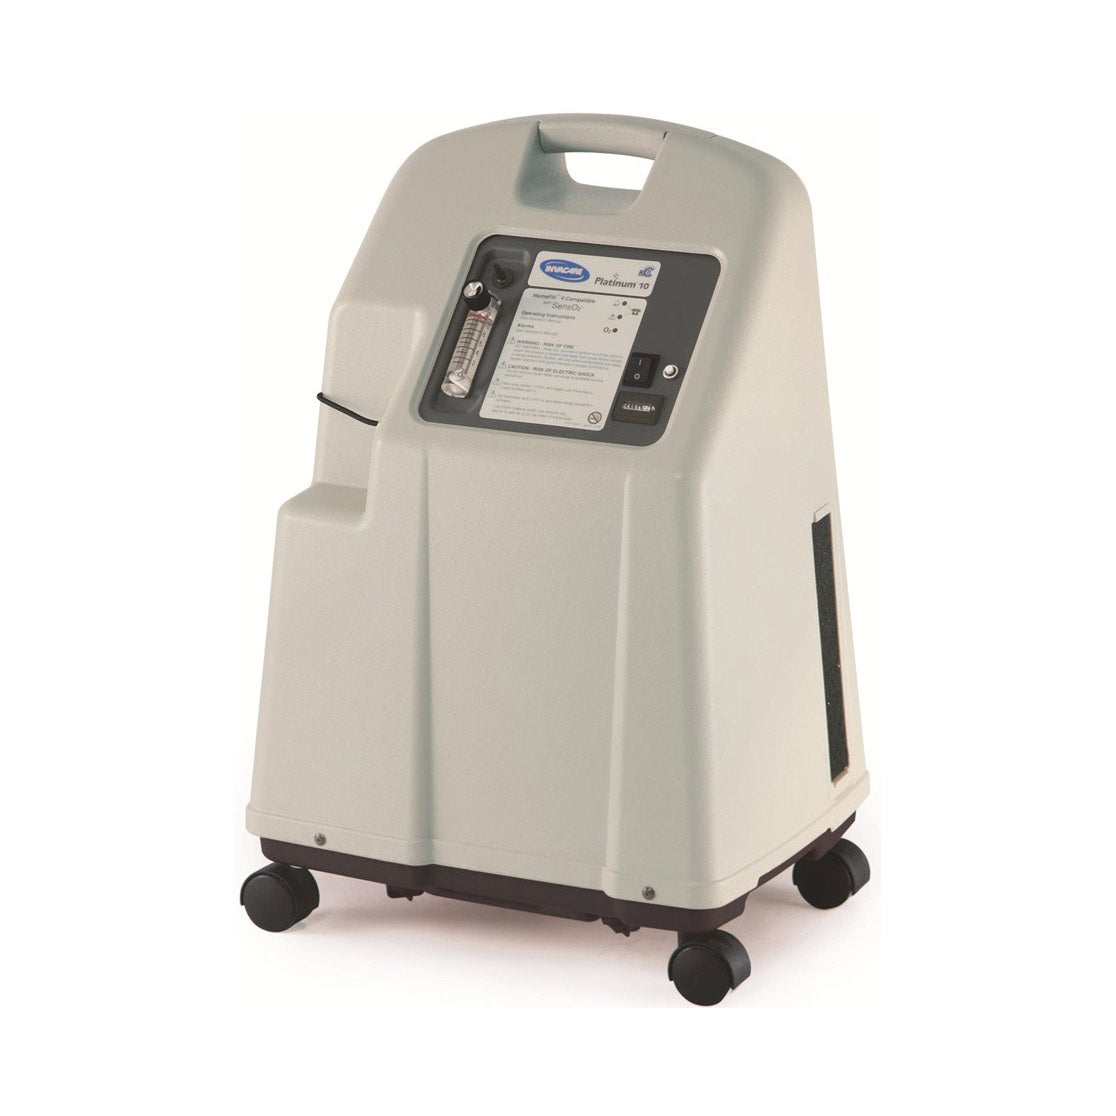 Perfecto2 w 5-liter concentrator irc5pw, irc5po2w by invacare.